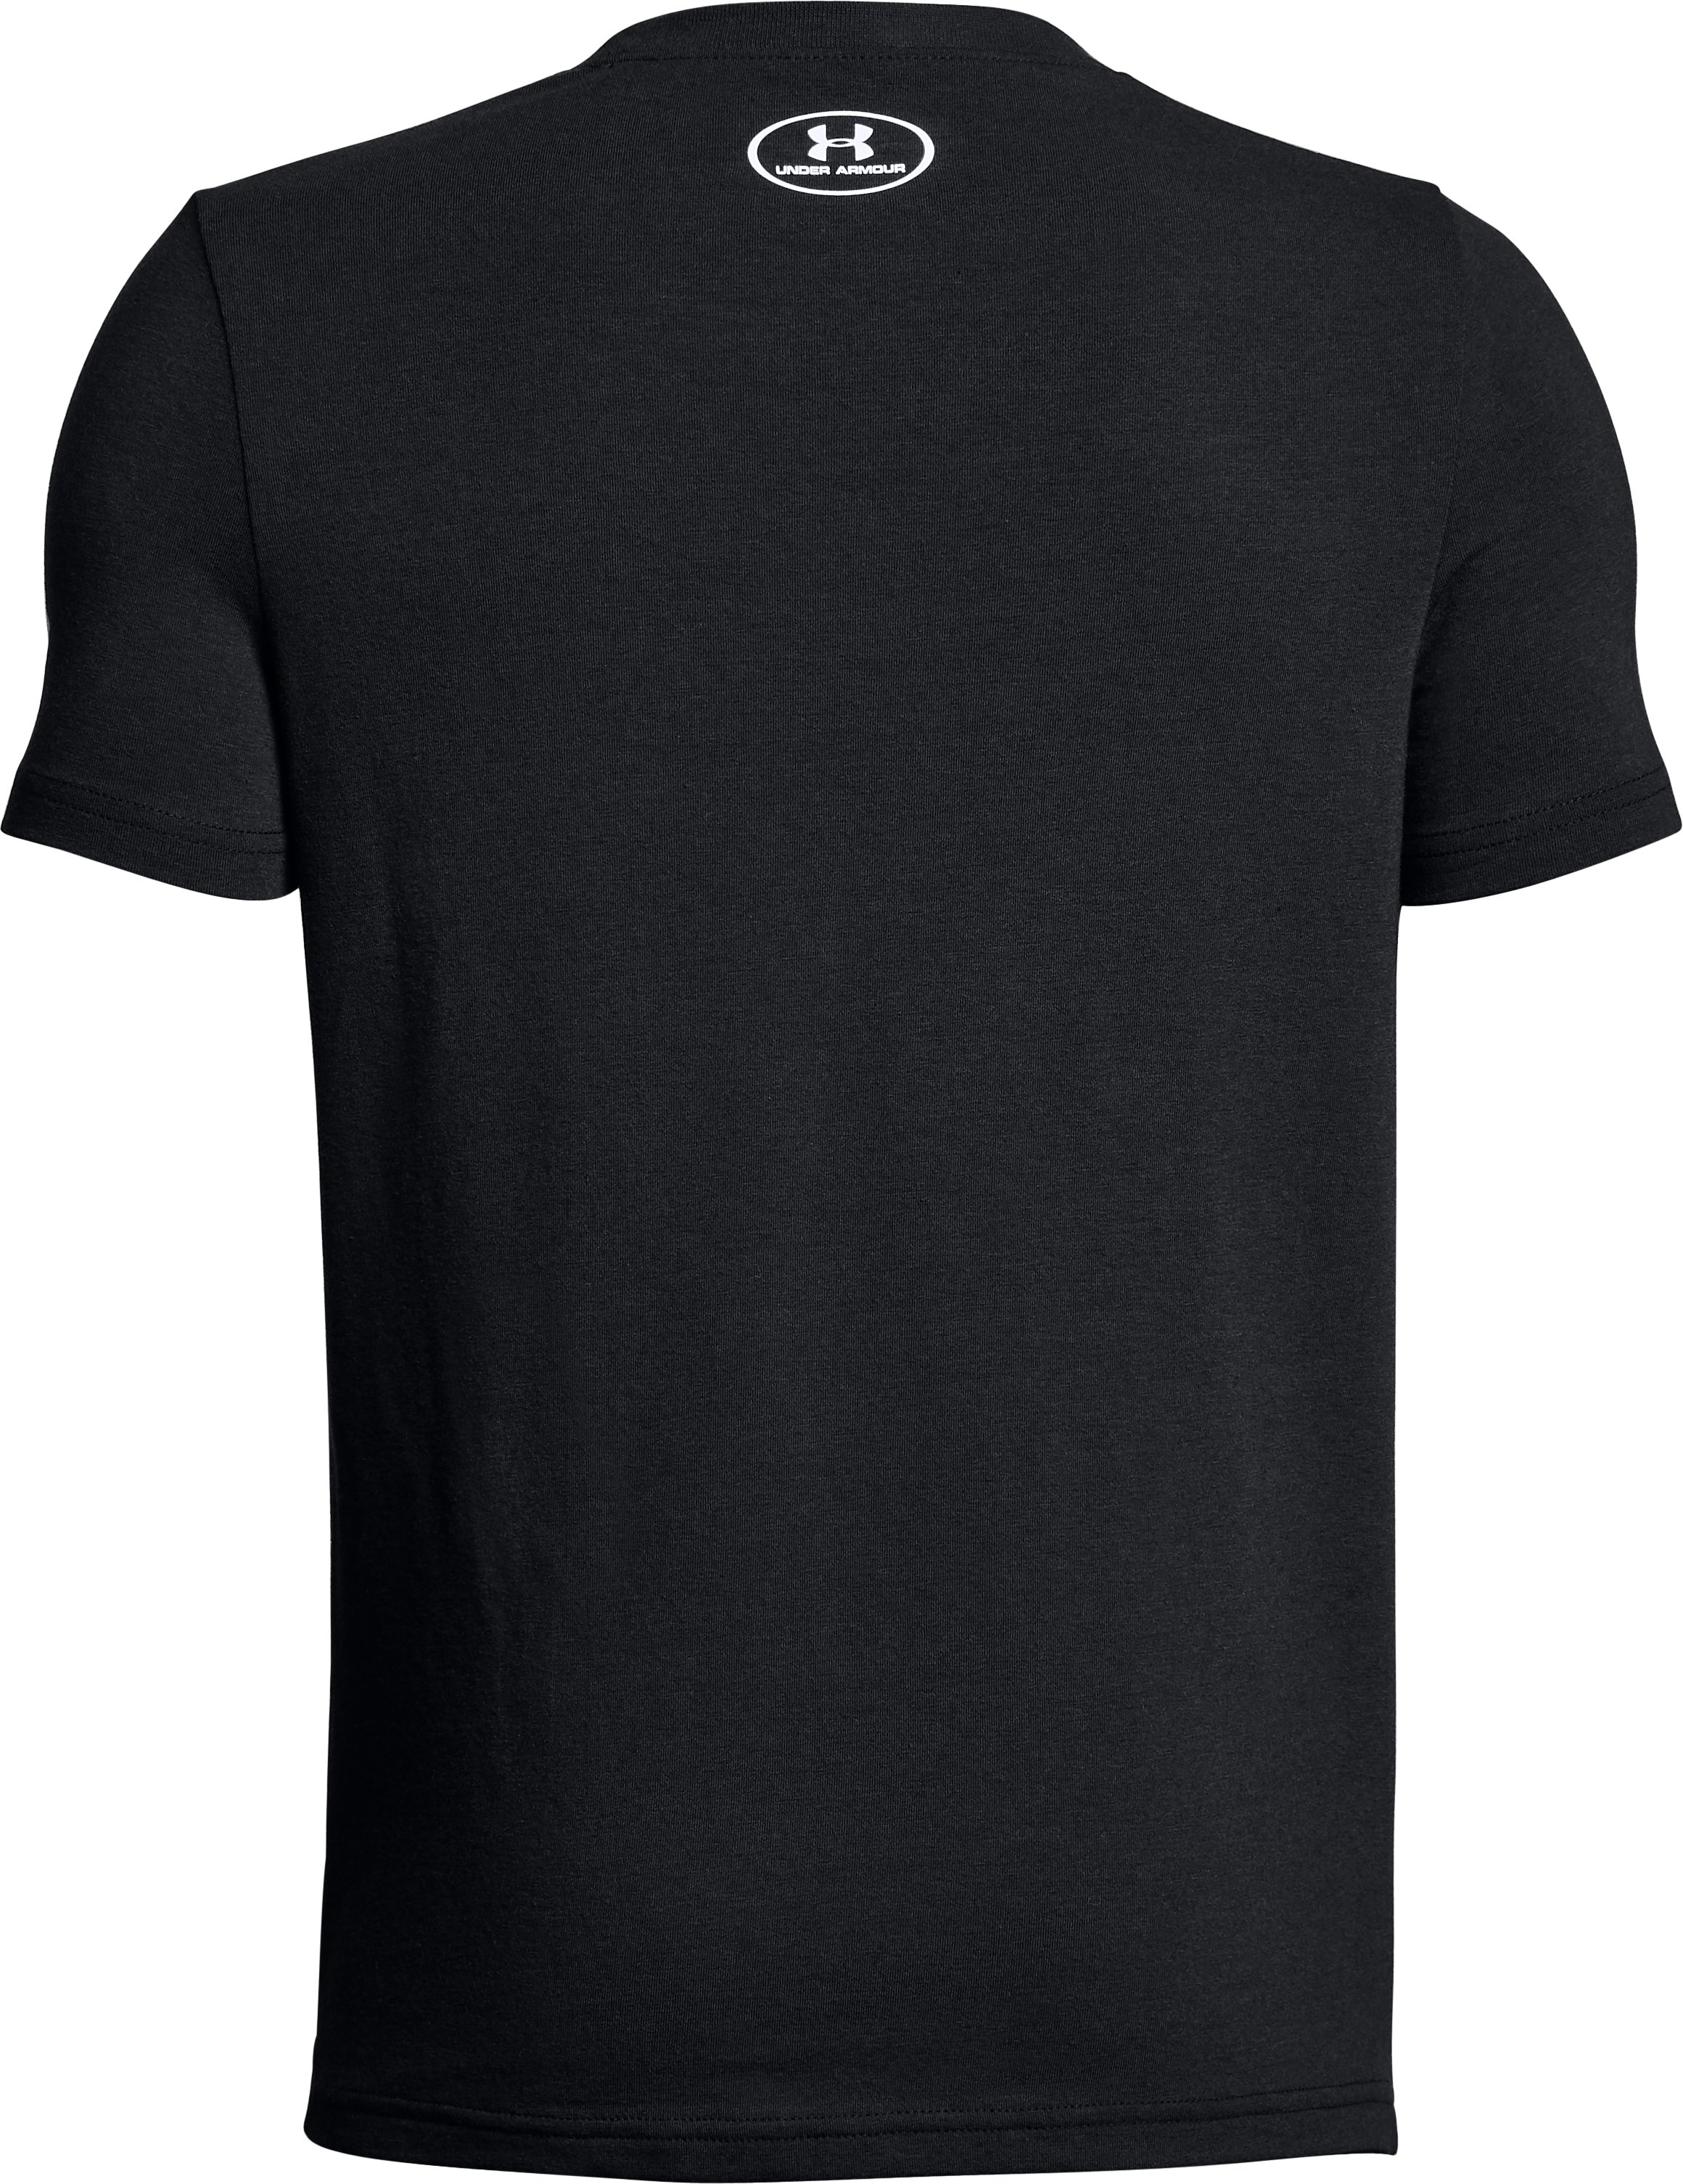 Boys' SC30 Logo T-Shirt, Black ,